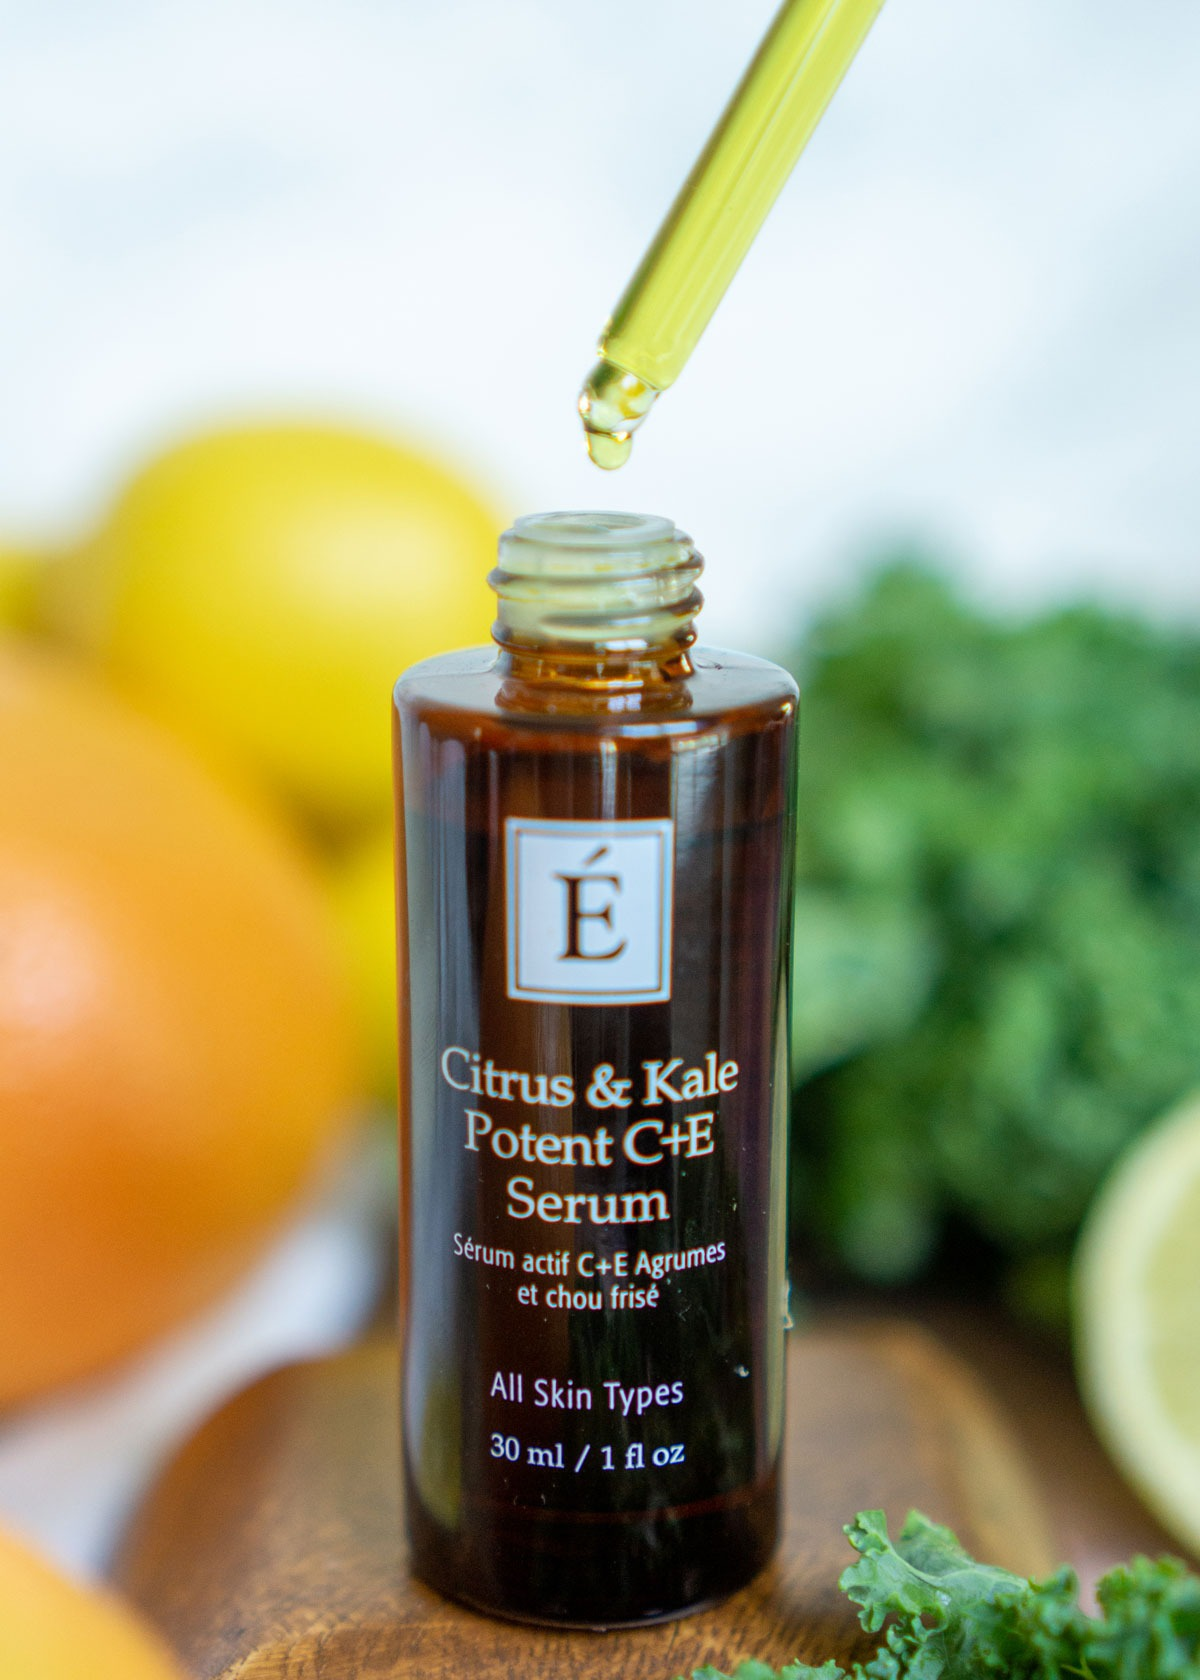 a bottle of Citrus and Kale serum